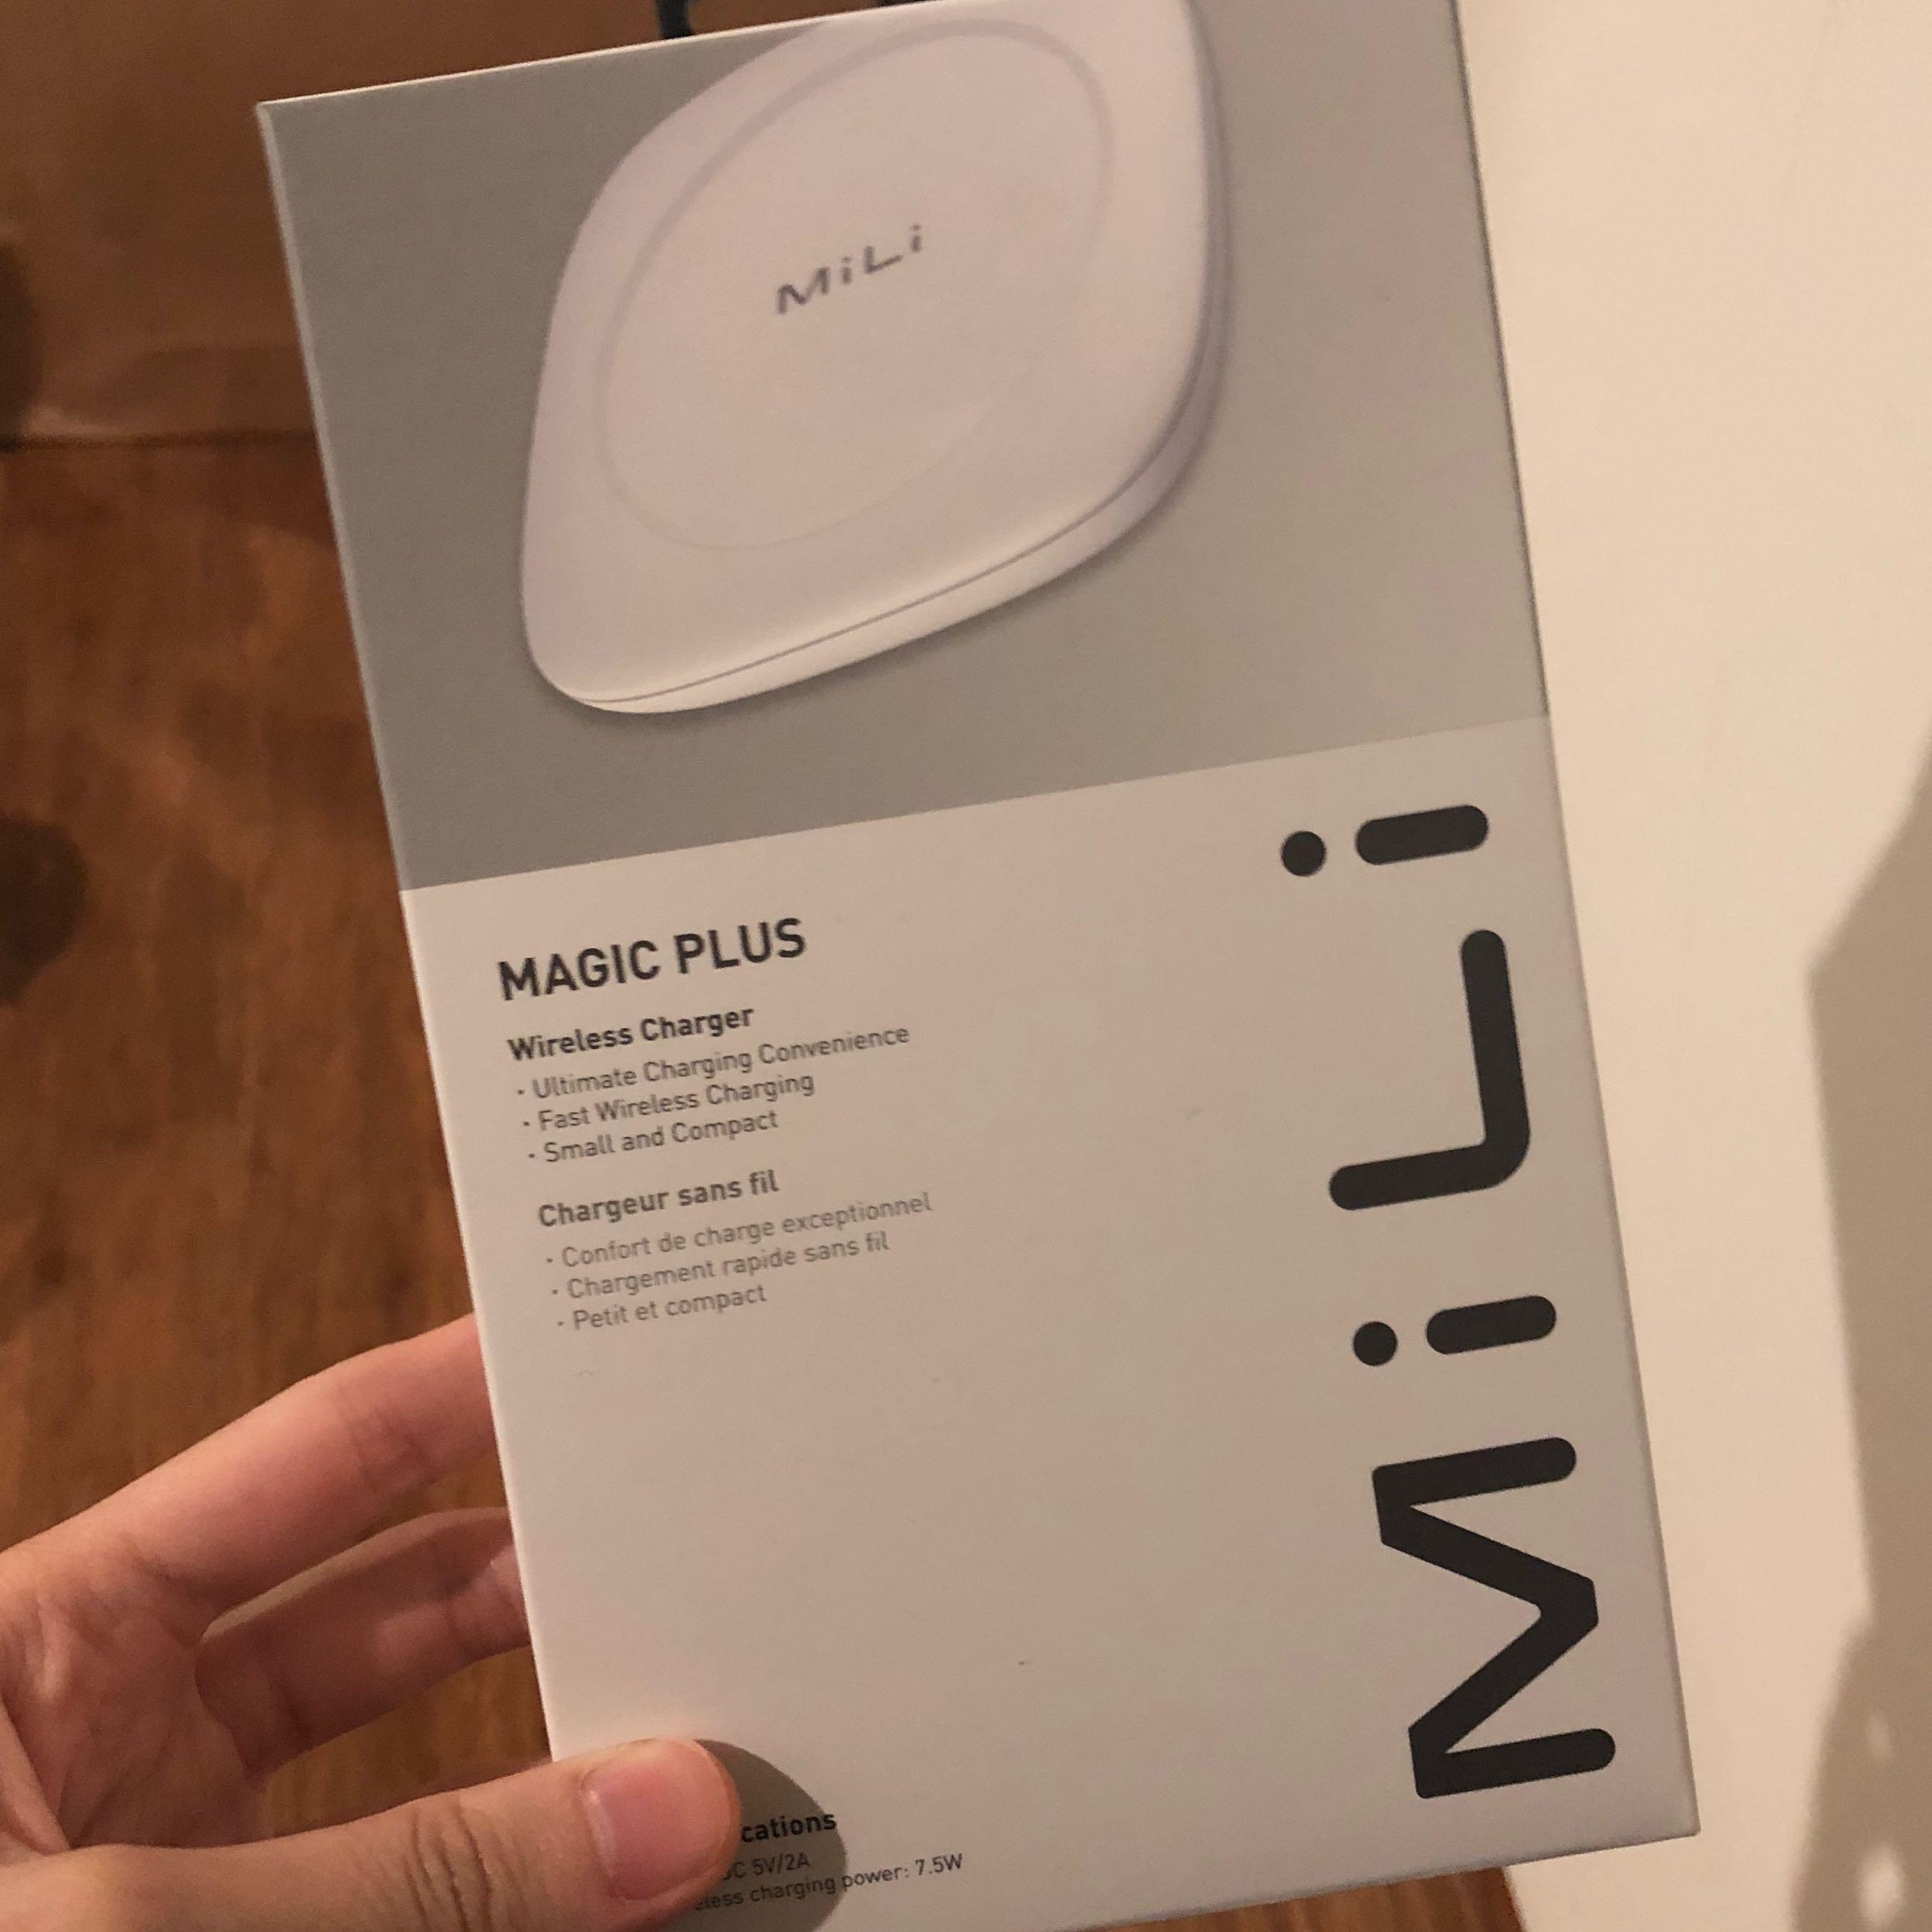 JUAL CEPAT!! MiLi Wireless Charger Magic Plus